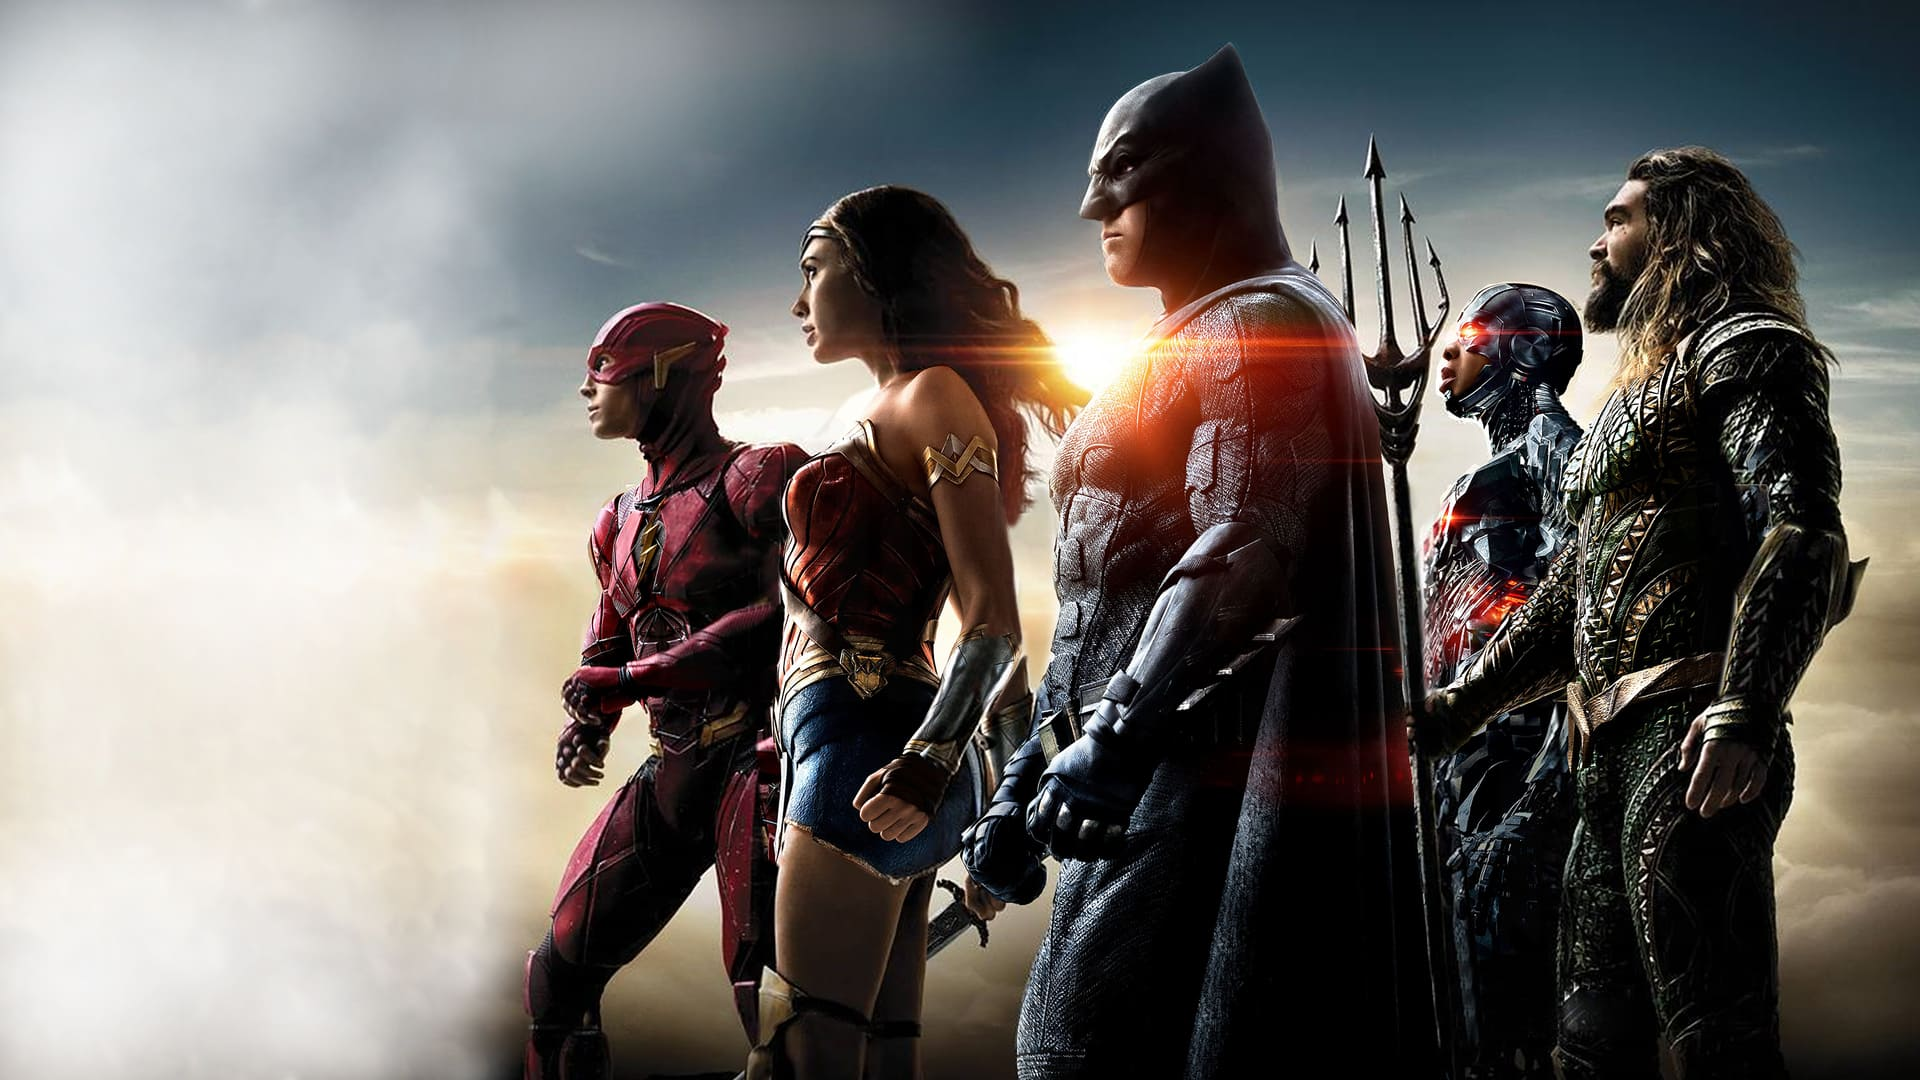 Ben Affleck Reveals Zack Snyder's Role In The Making Of 'Justice League'